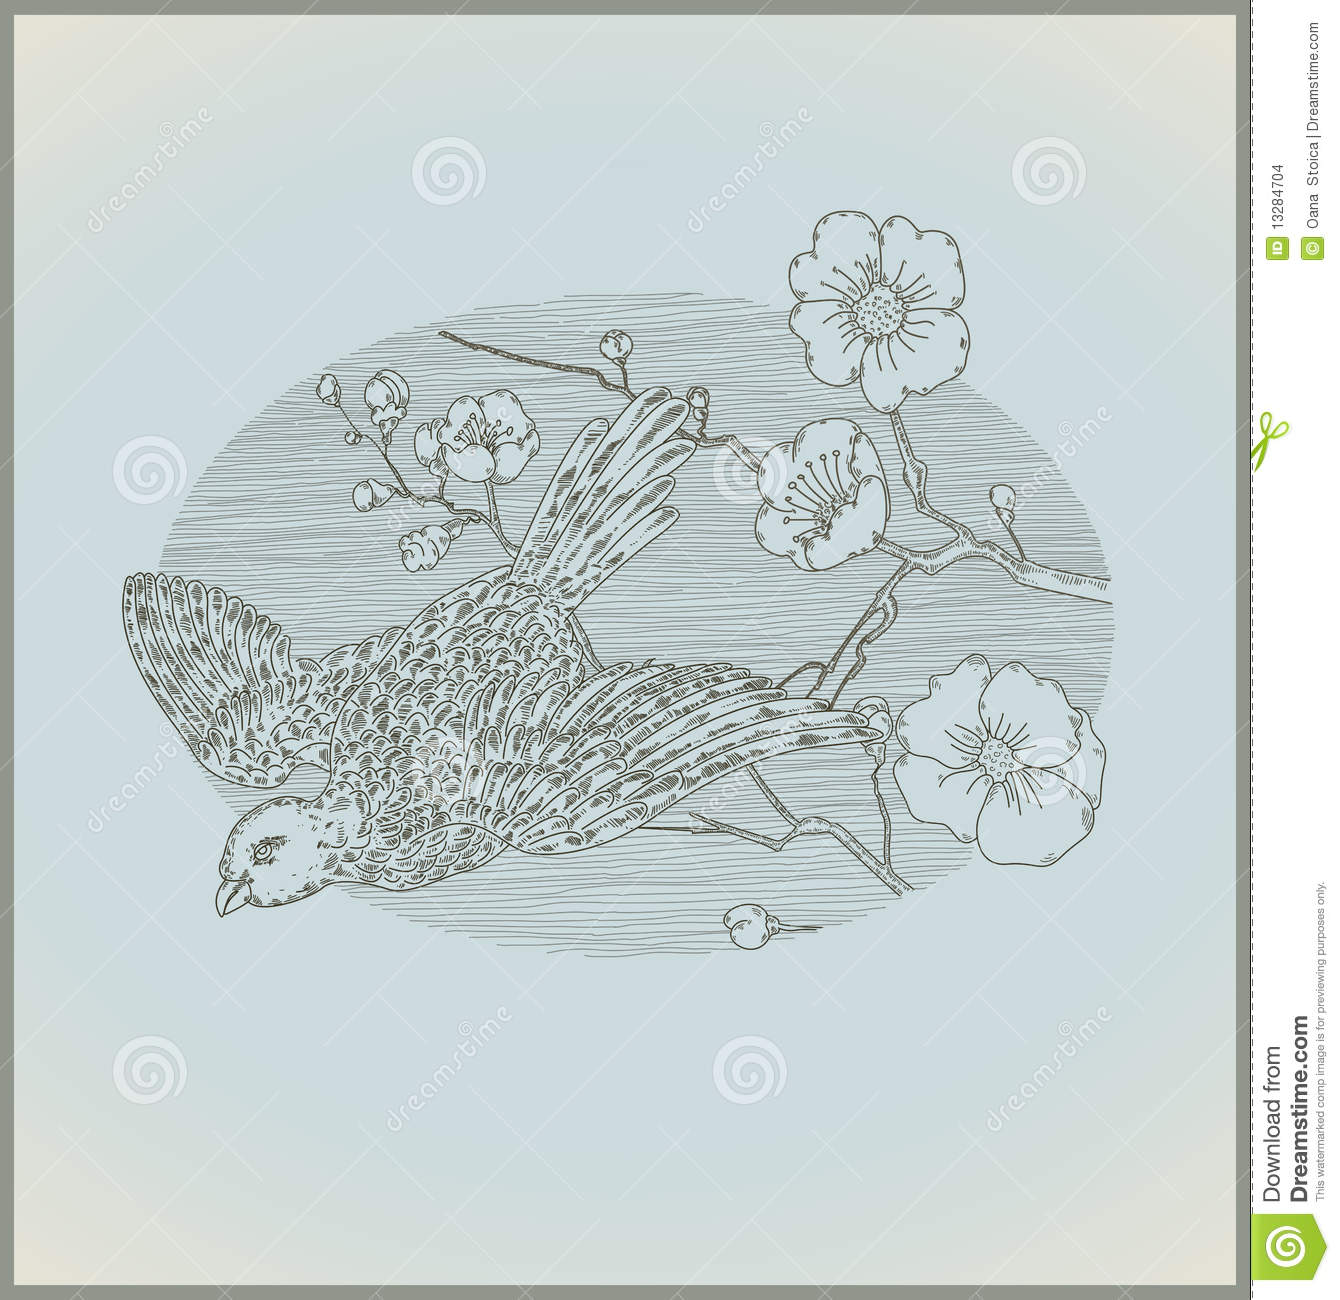 vintage line drawing bird and flowers stock images